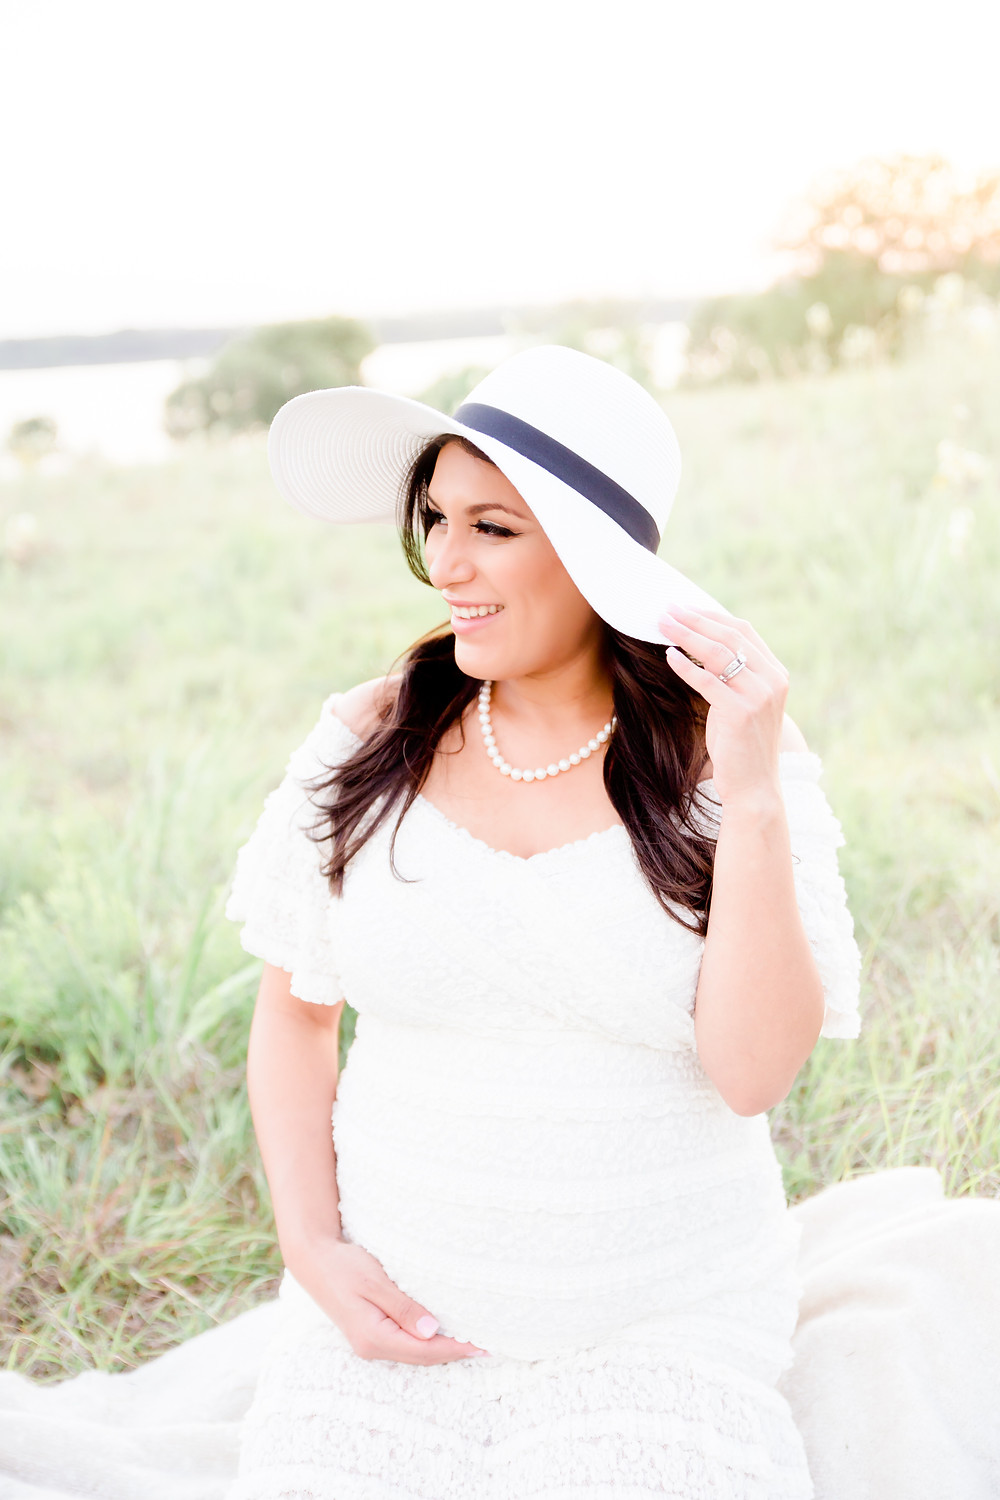 Dallas Maternity photography, Lexi Meadows Photography, dallas photographer